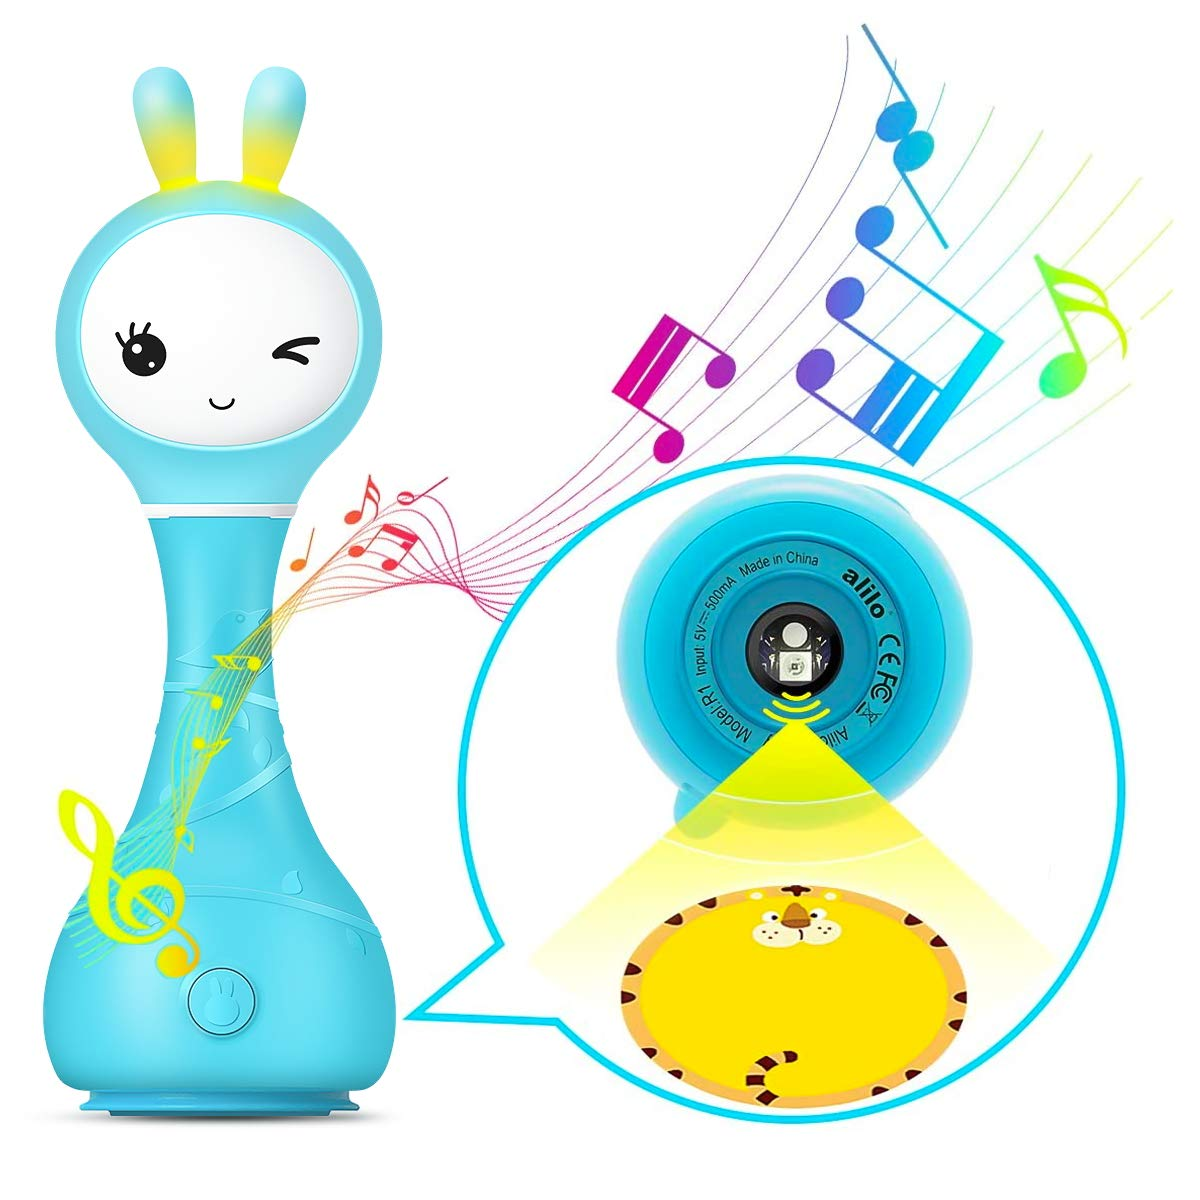 Alilo Bunny Baby Rattle Shaker and Teether Toys,Electronic Rattle Infants Toy,9 Kinds of Color Learning and Educational Toys with Music & Light for 0-6-12 Months, Gift for Newborns Girls Boys Toddlers